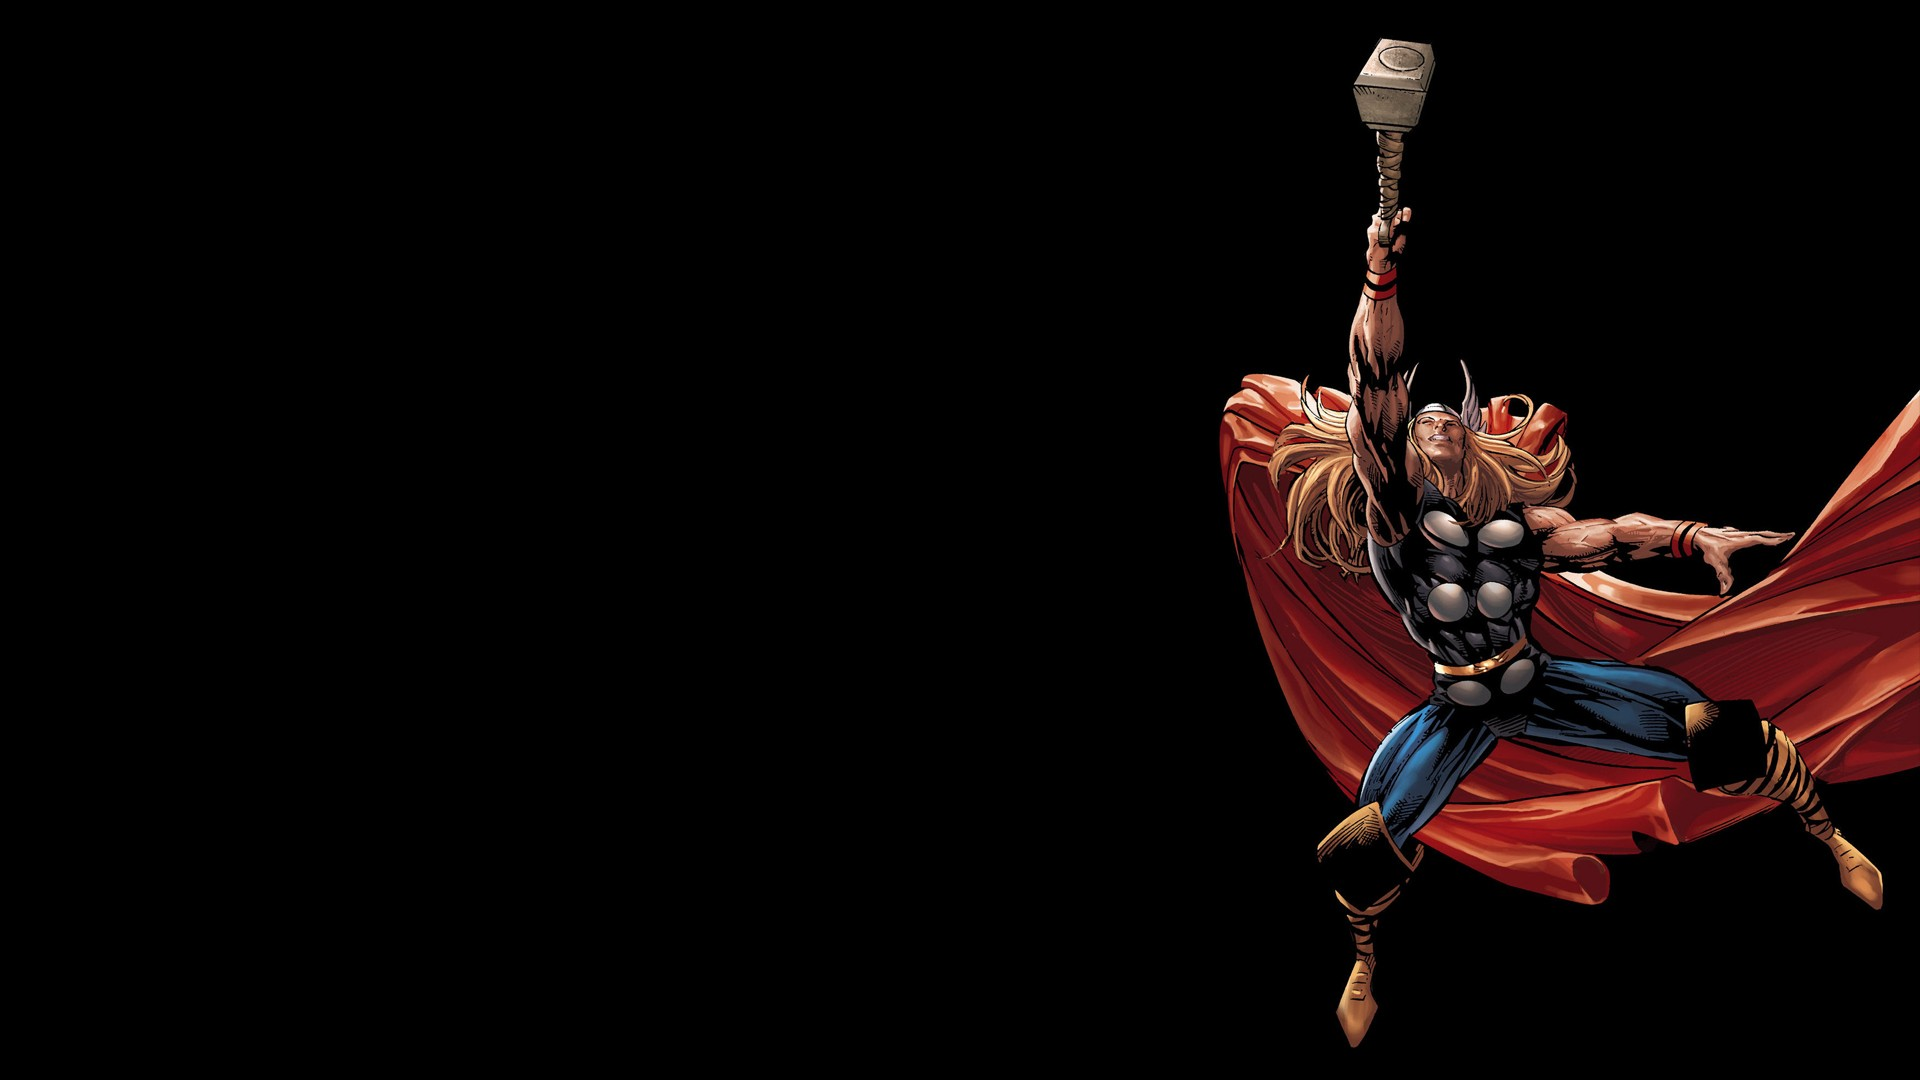 Movies Thor HD Wallpapers, Desktop Backgrounds, Mobile Wallpapers 1920x1080